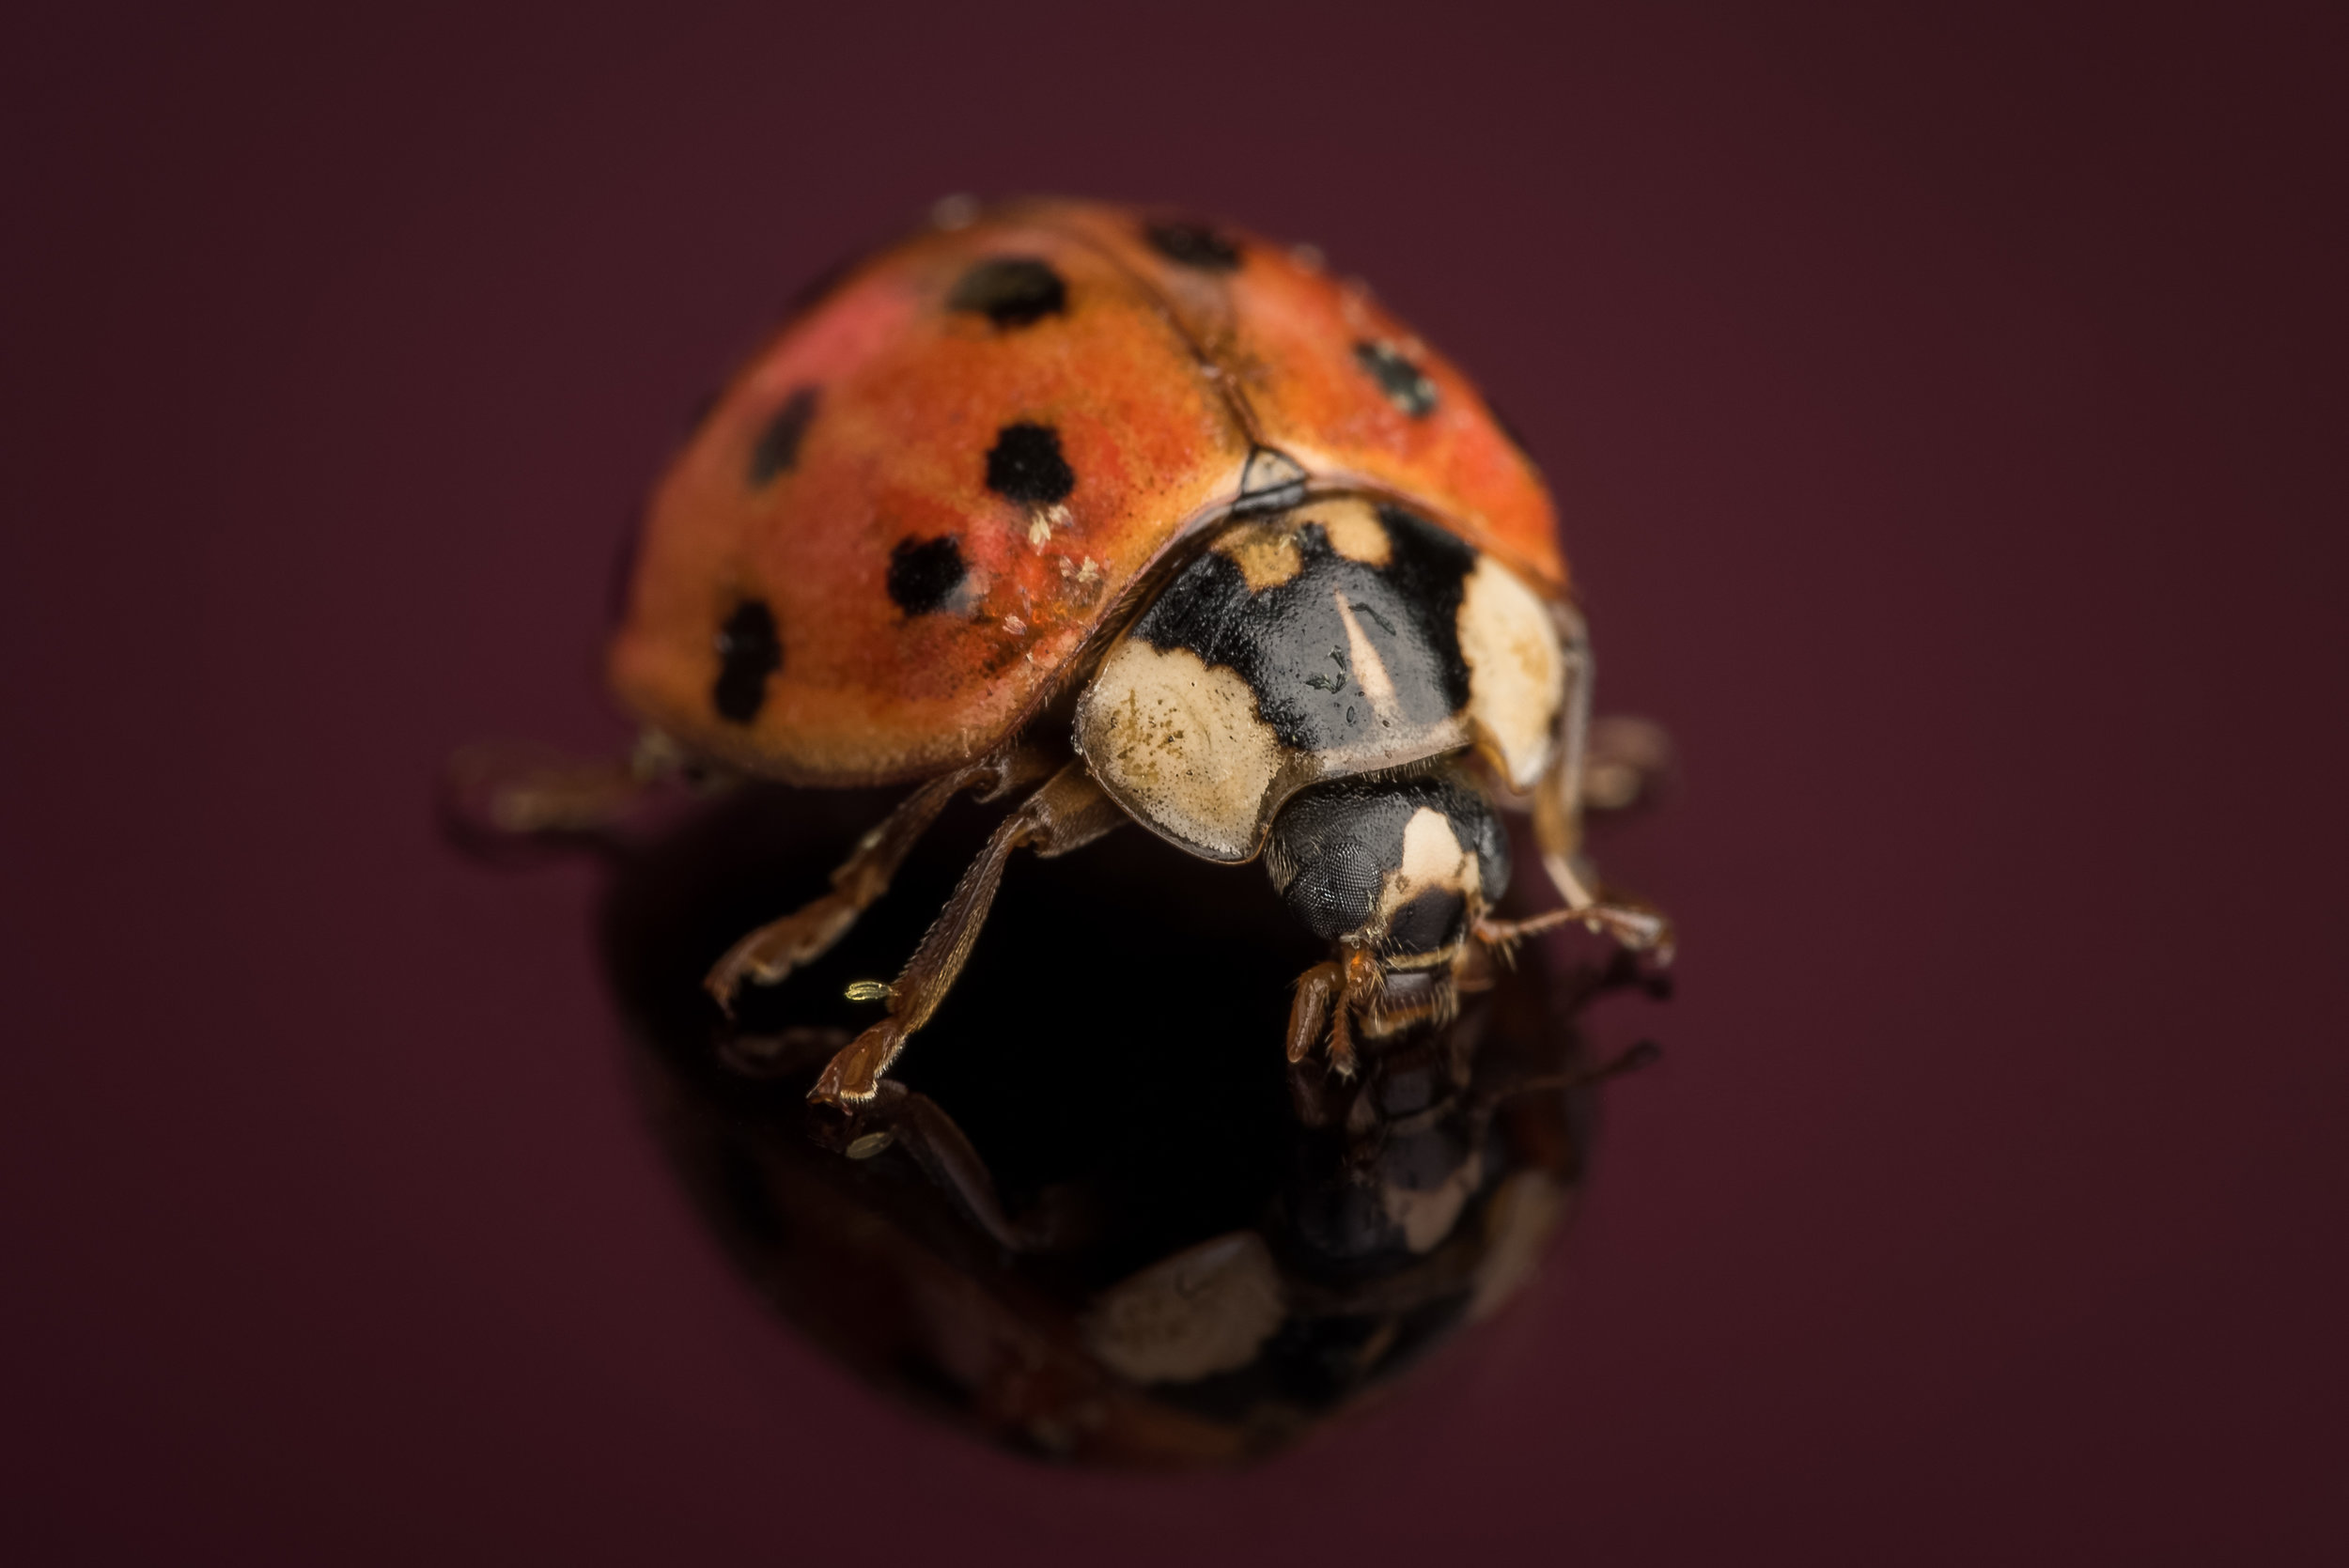 Multicolored Asian Lady Beetle - Nikon D750 Tamron SP 90mm ISO 100 90mm f/32 1/250 sec